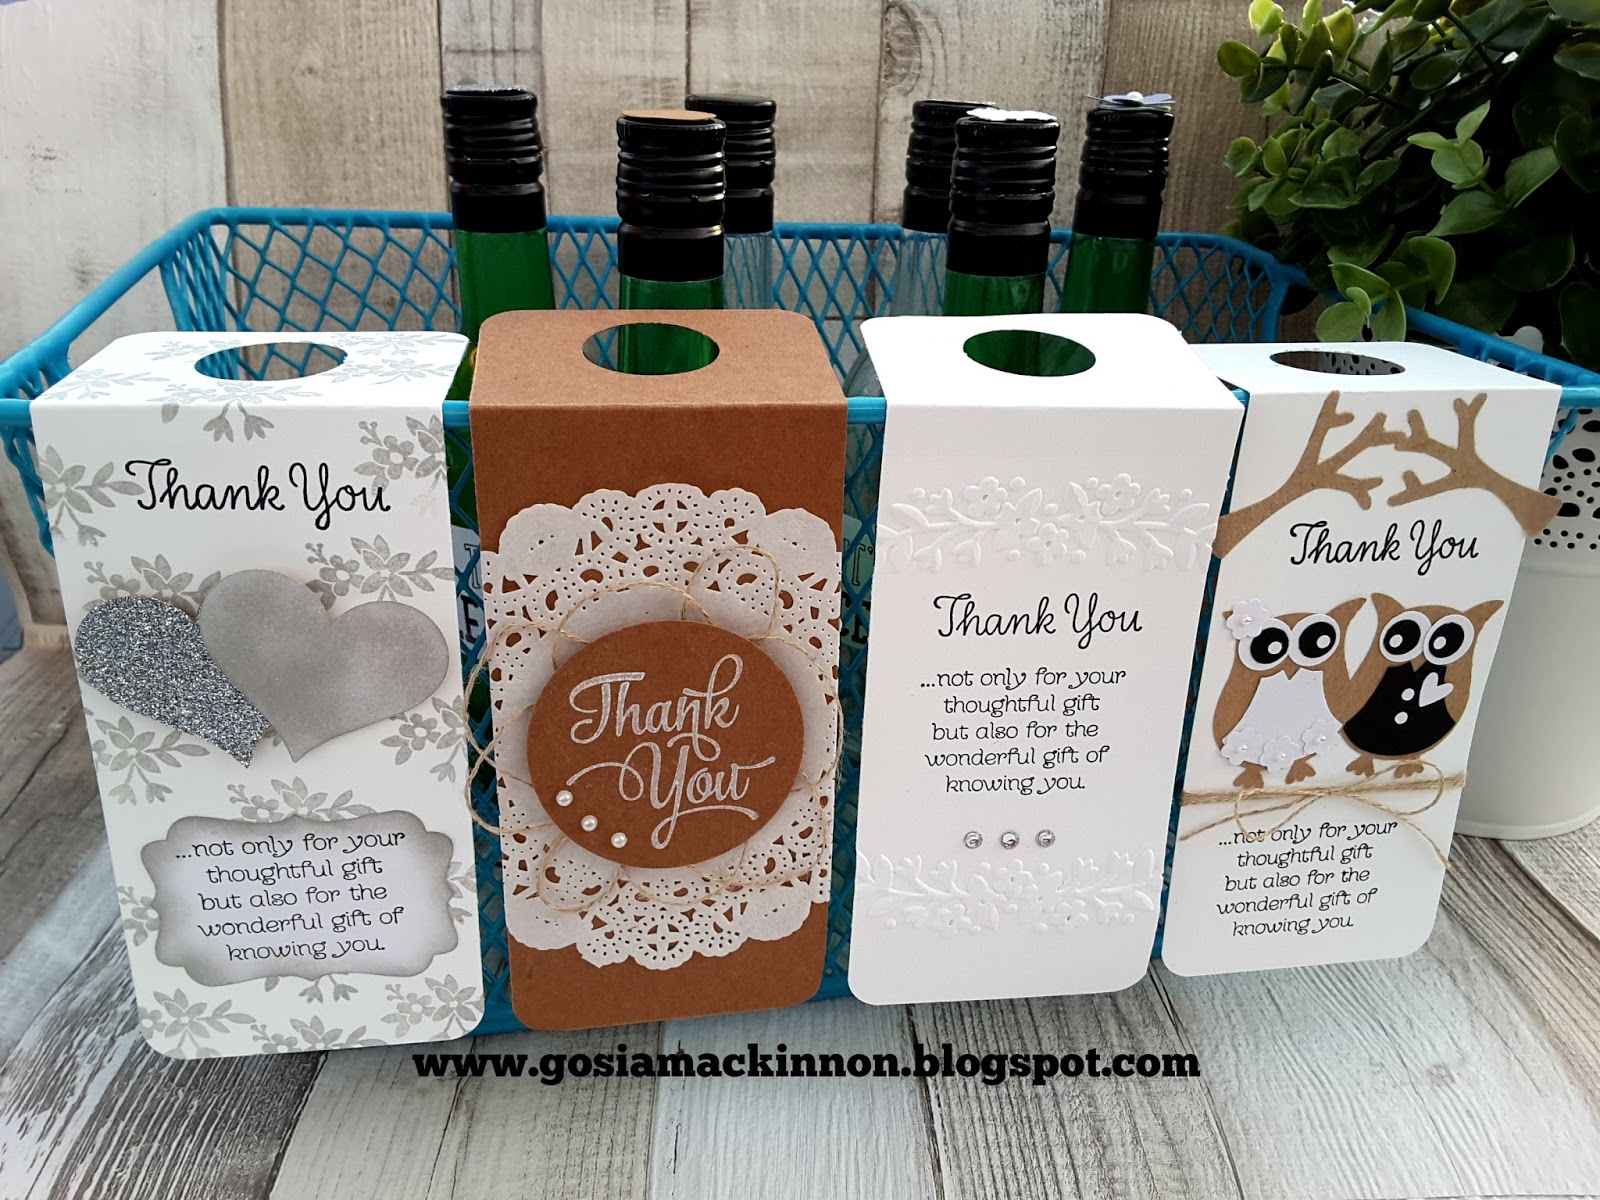 WEDDING FAVOR WINE BOTTLE LABEL & TAGS IDEA WITH STAMPIN UP!